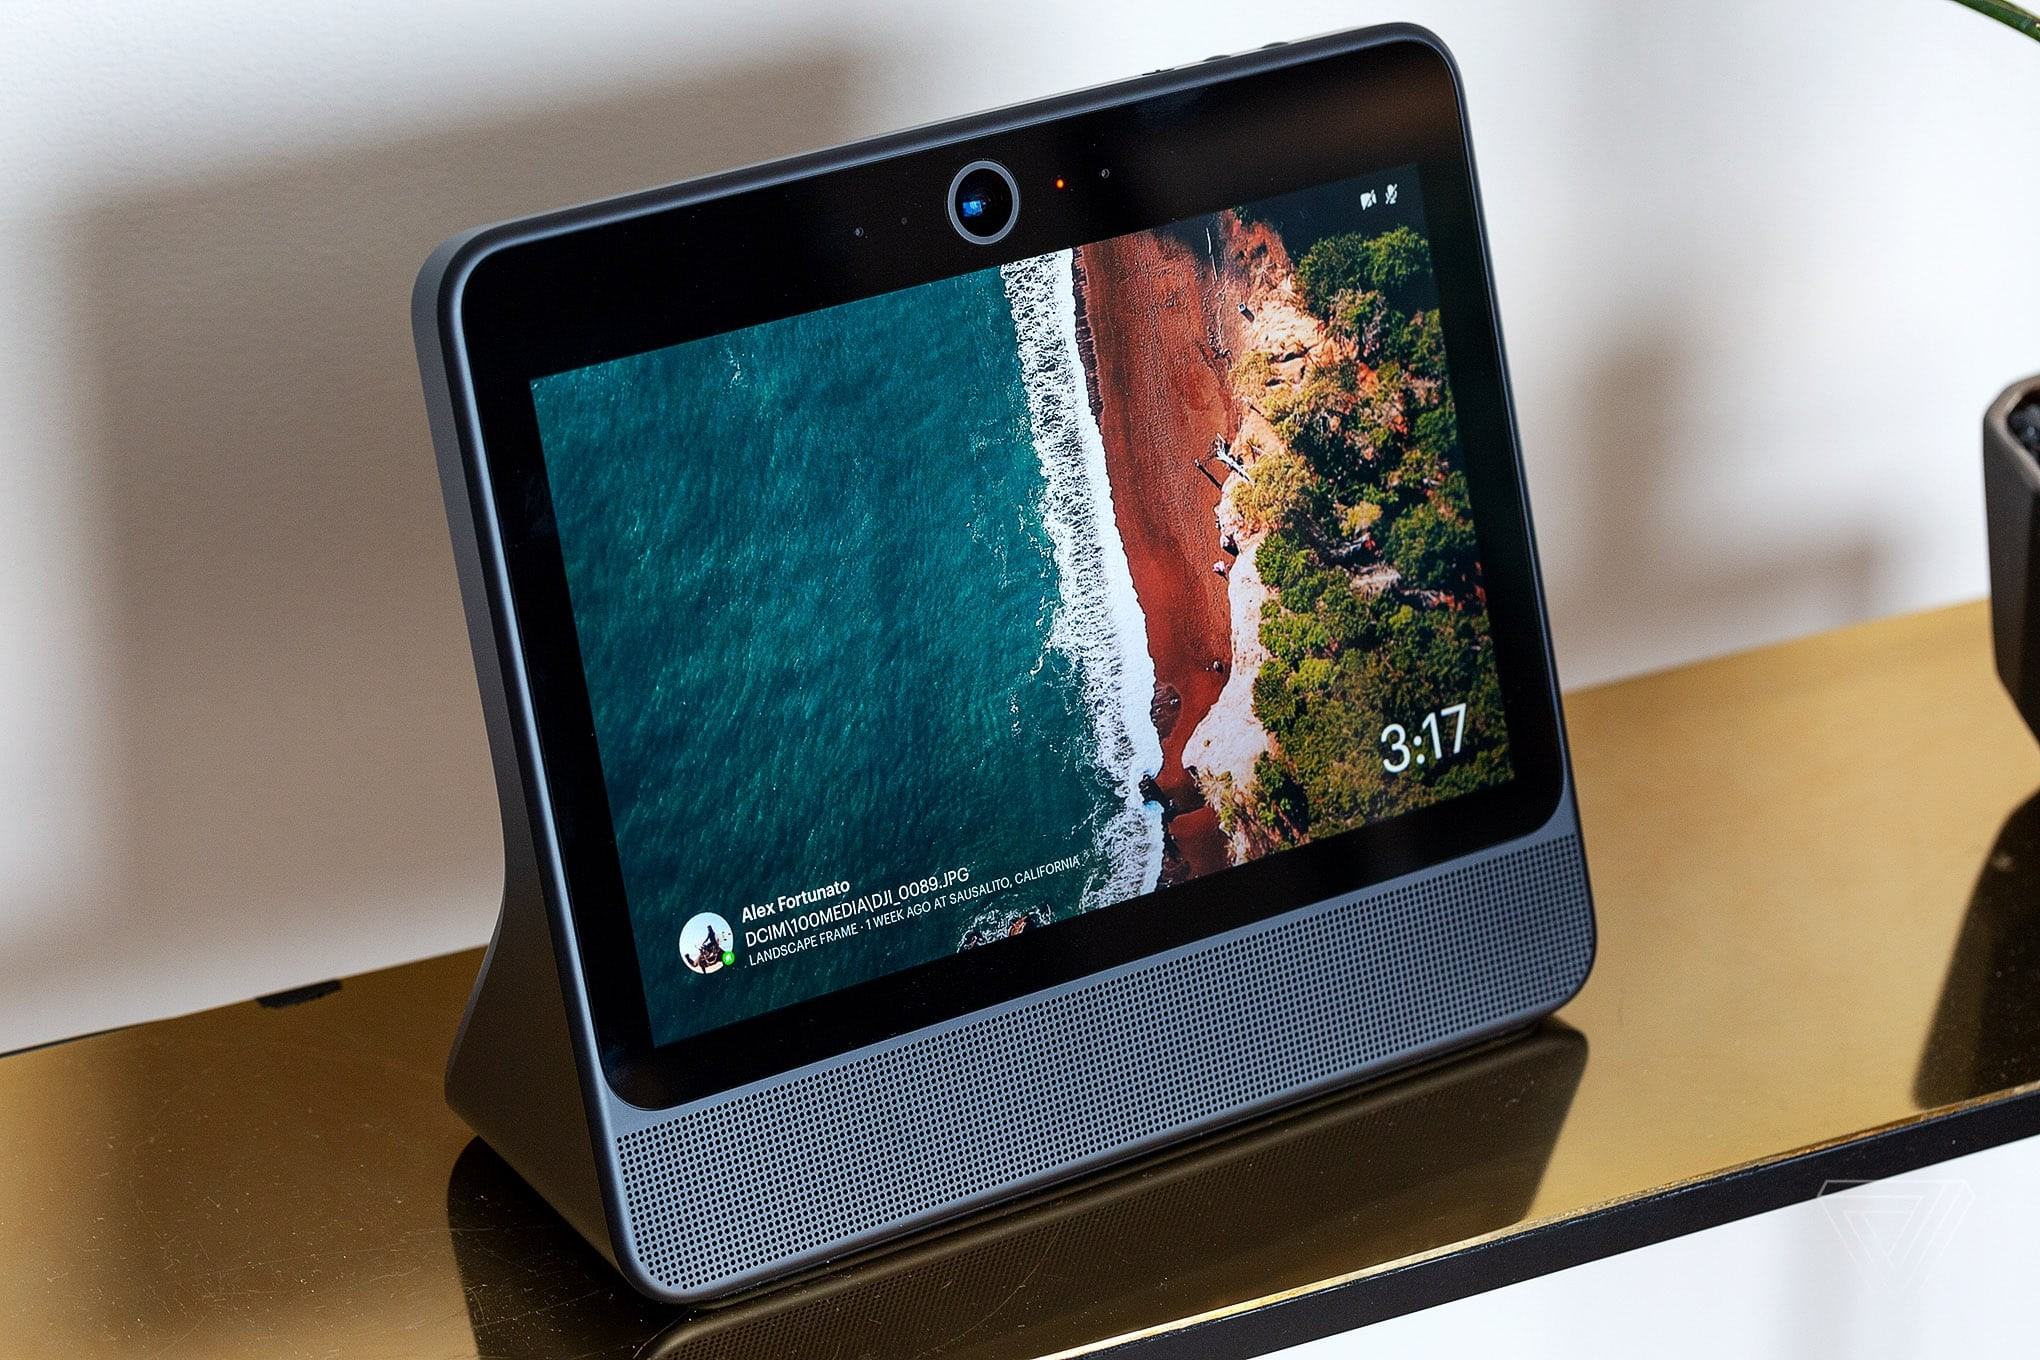 Facebook's New Portal Devices Will Let you Make Video Calls On a Large Display